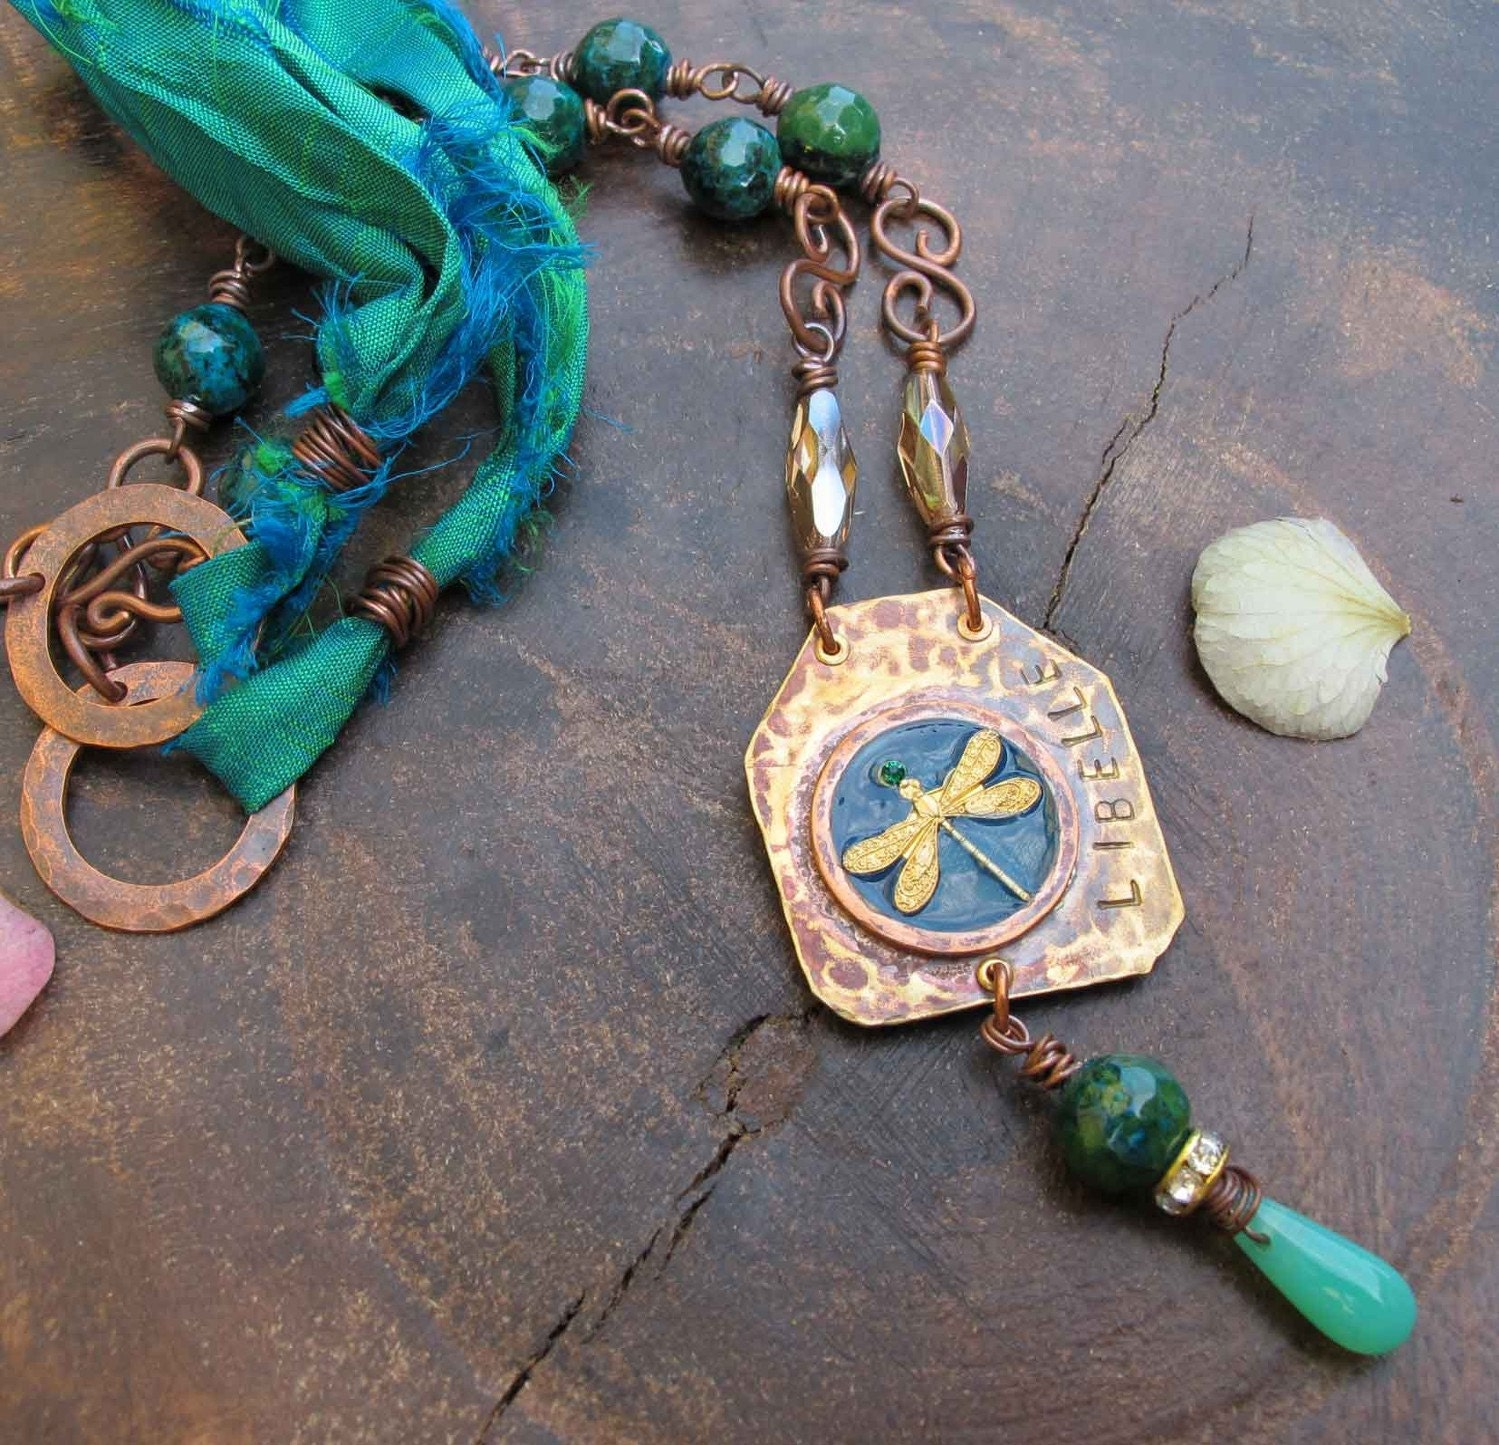 Libelle - Dragonfly Necklace